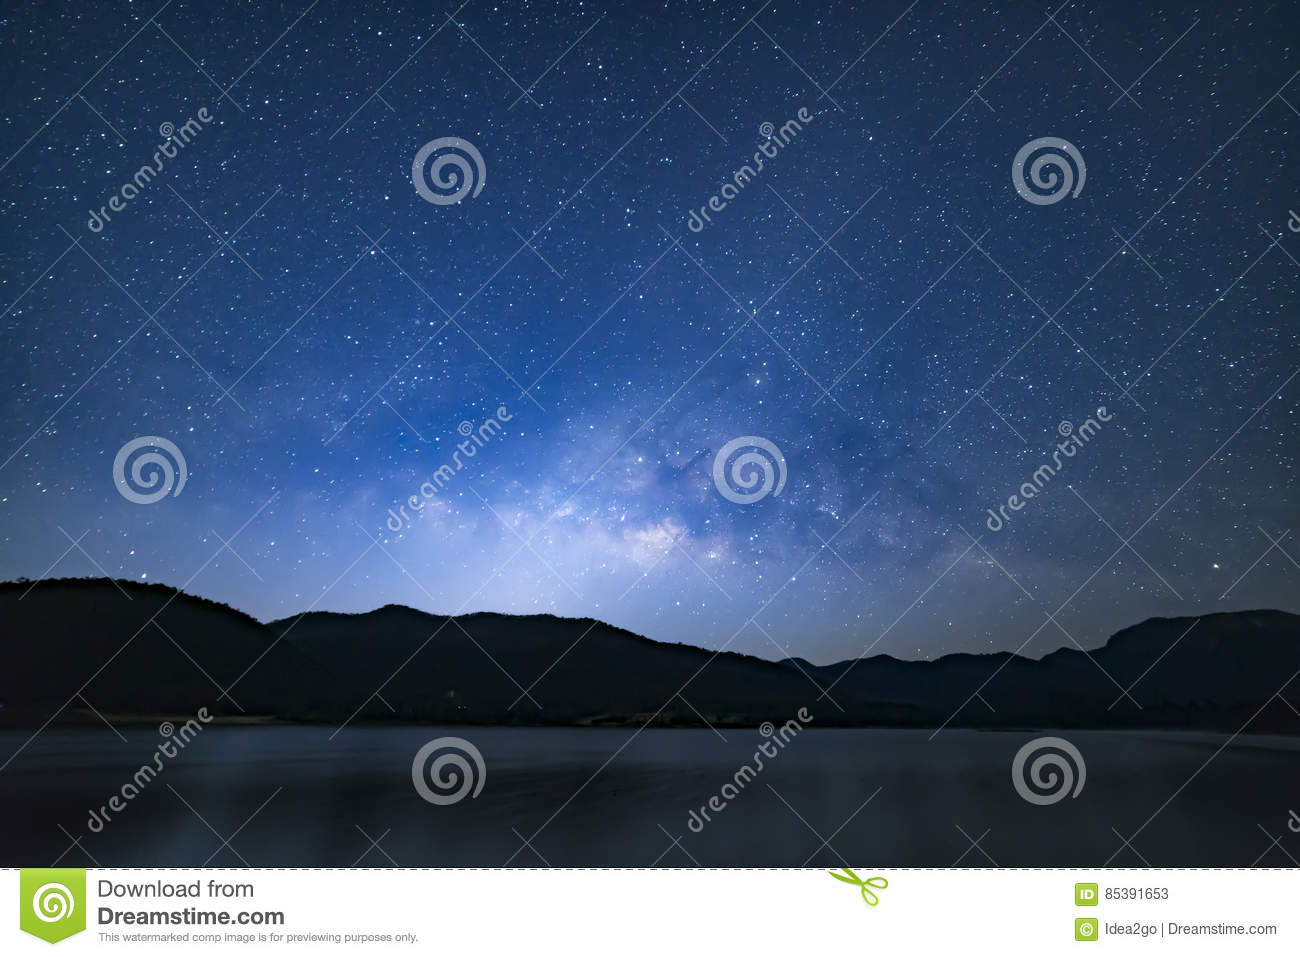 Peaceful starry night sky background